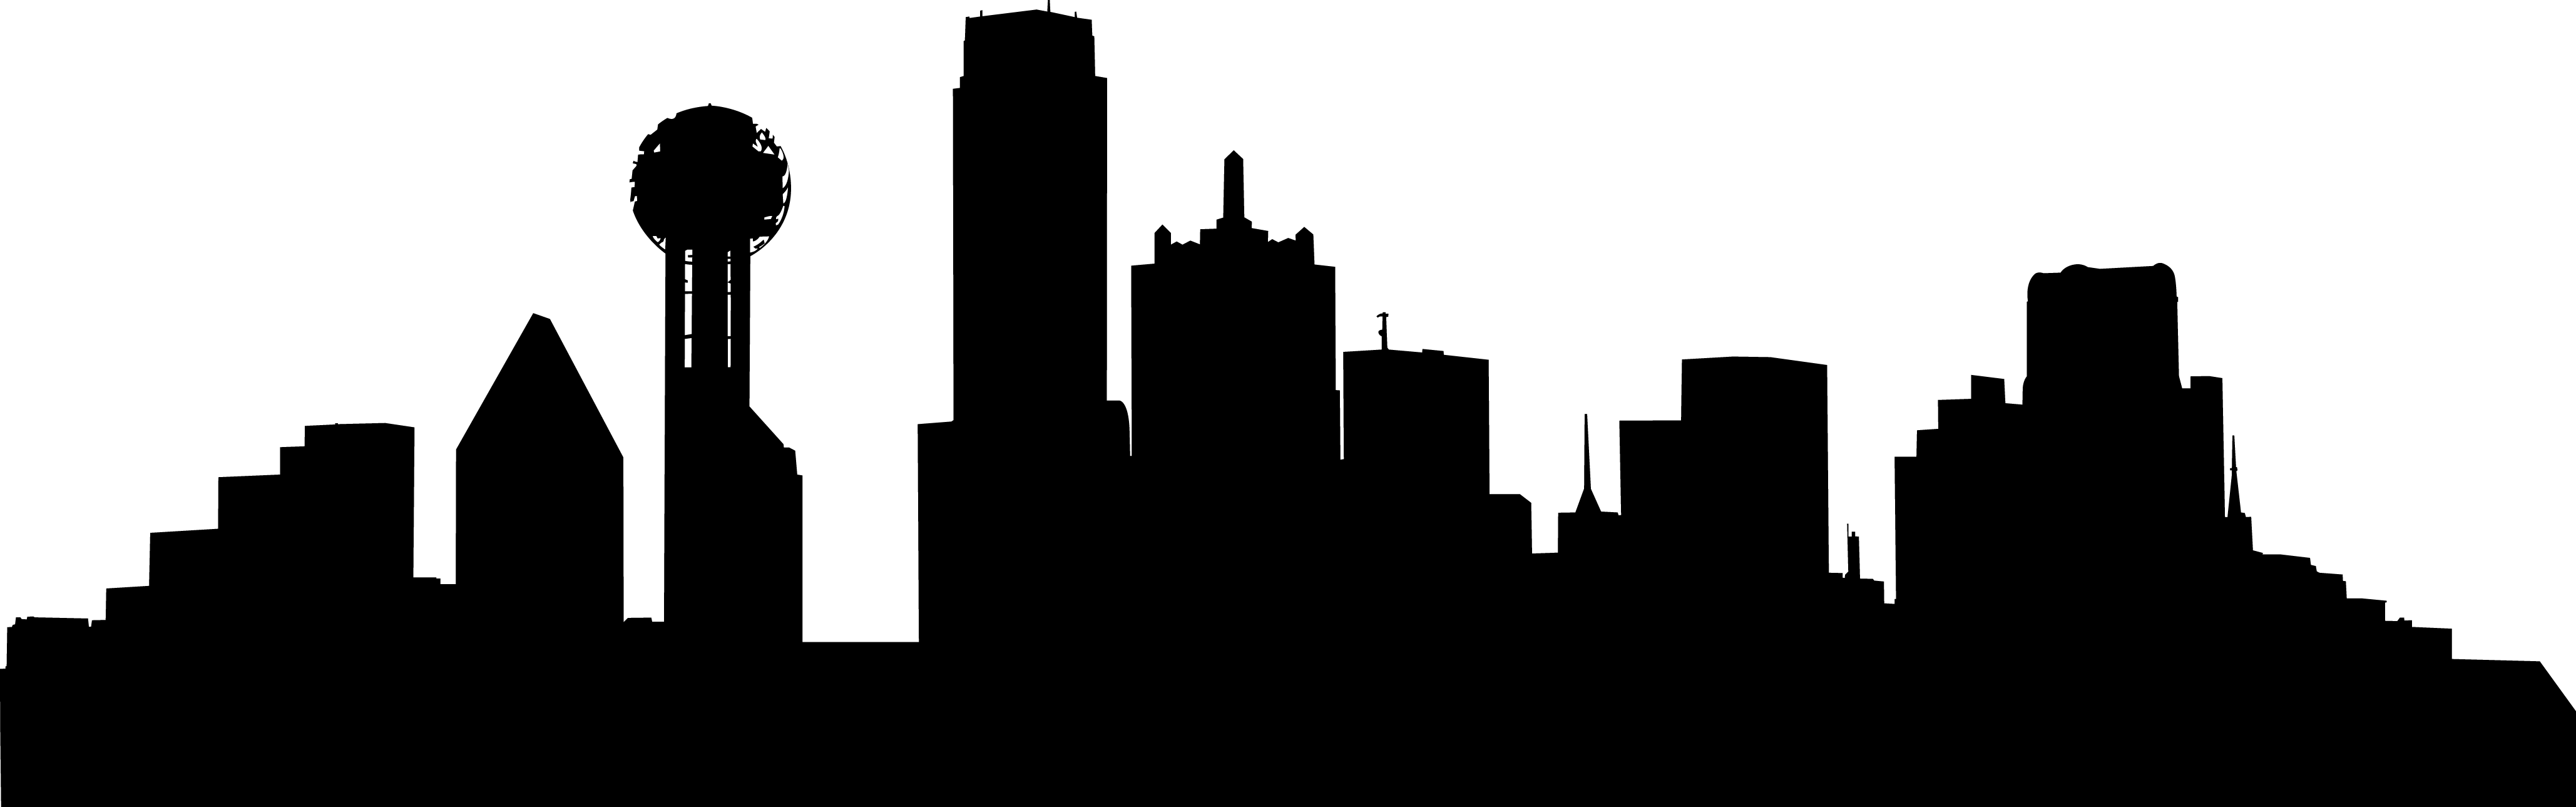 Houston drawing skyscraper. Chicago skyline silhouette wallpaper